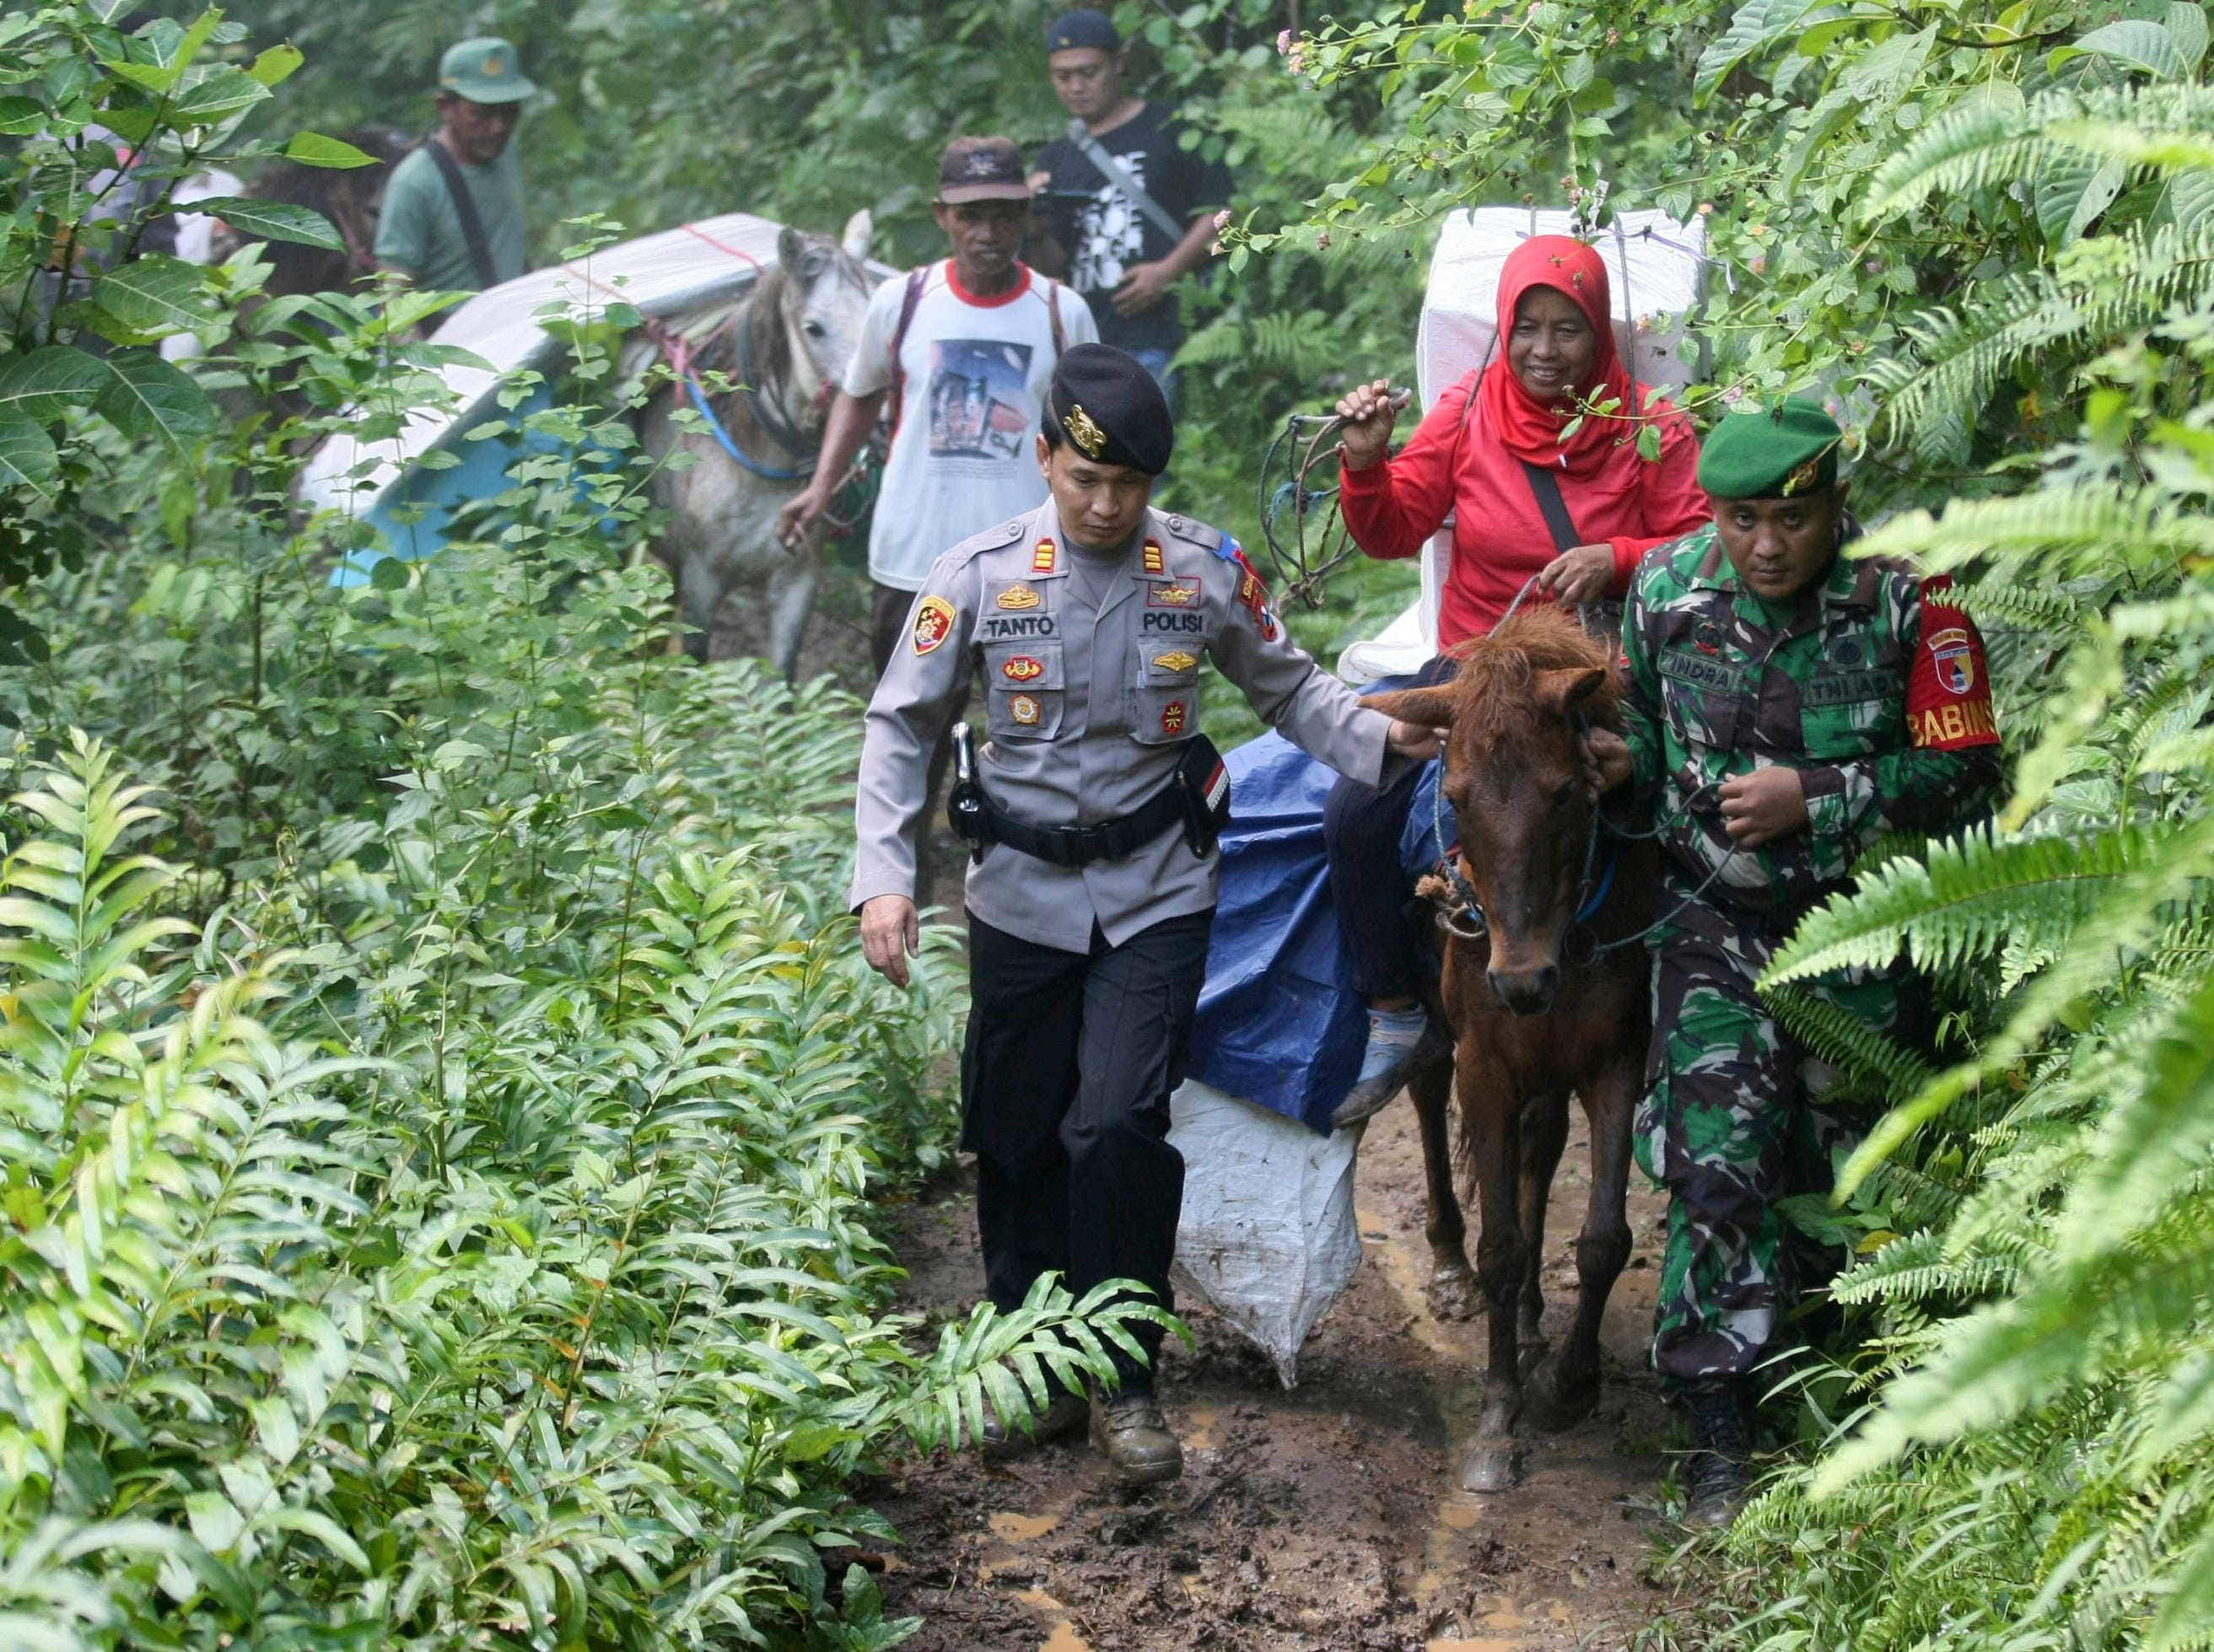 Police officers and soldiers escort electoral workers using horses to distribute ballot boxes and other election paraphernalia to polling stations in remote villages in Tempurejo, East Java, Indonesia, Monday, April 15, 2019. The world's third largest democracy is gearing up to hold its legislative and presidential elections that will pit the incumbent Joko Widodo against his contender former special forces general Prabowo Subianto.